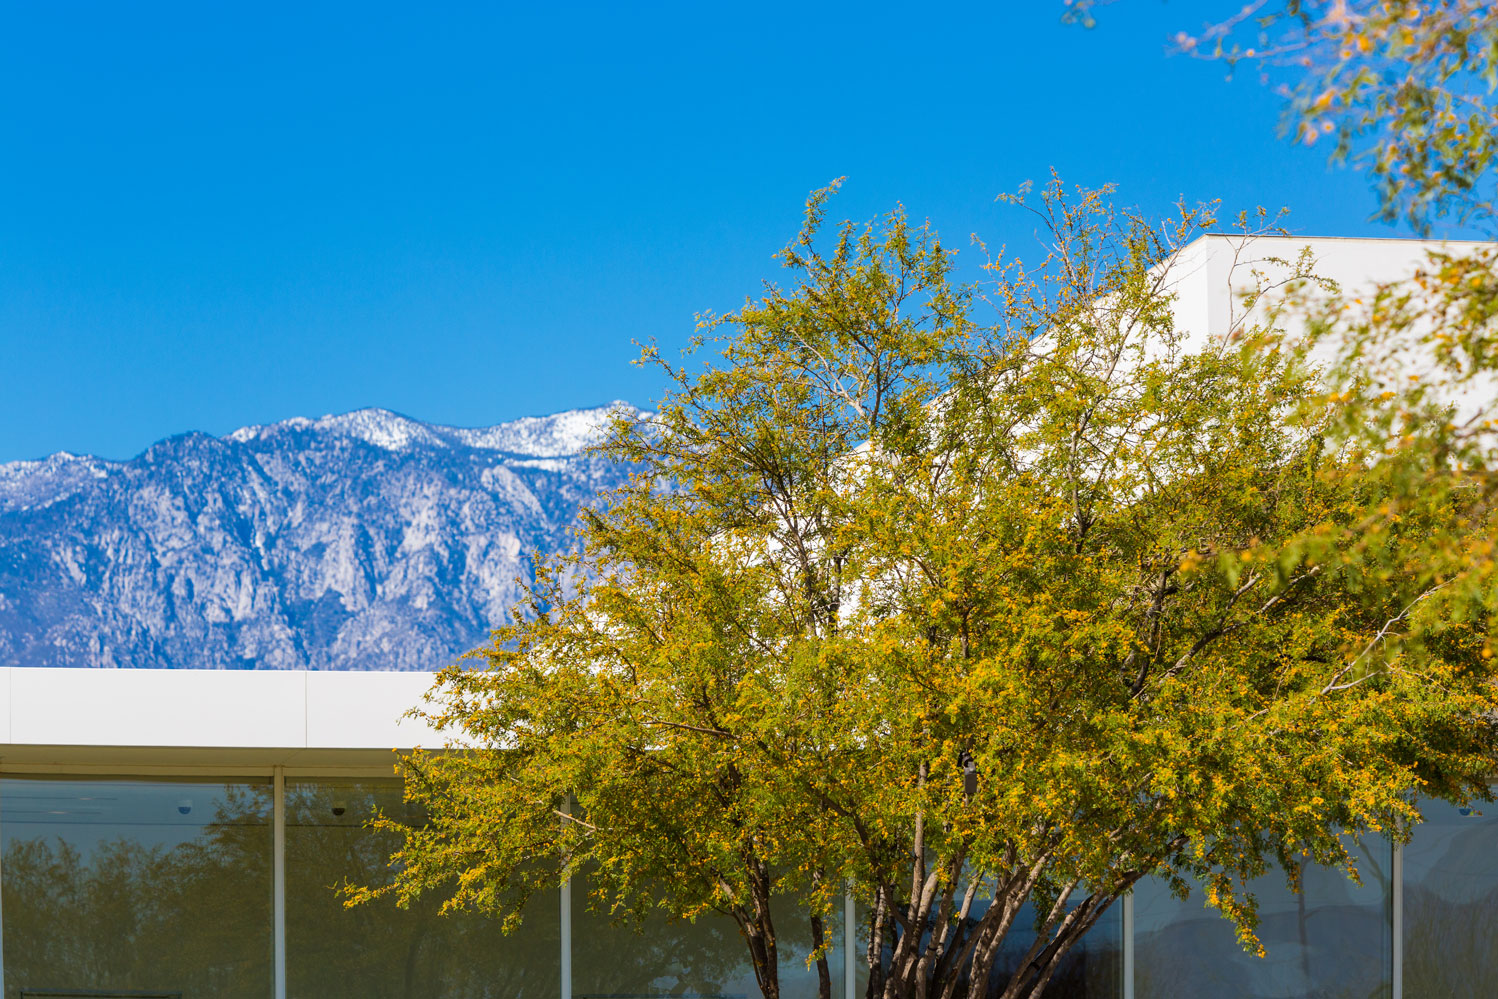 A blooming Sweet Acacia against a backdrop of the roof of the Center and Gardens and Mount San Jacinto.